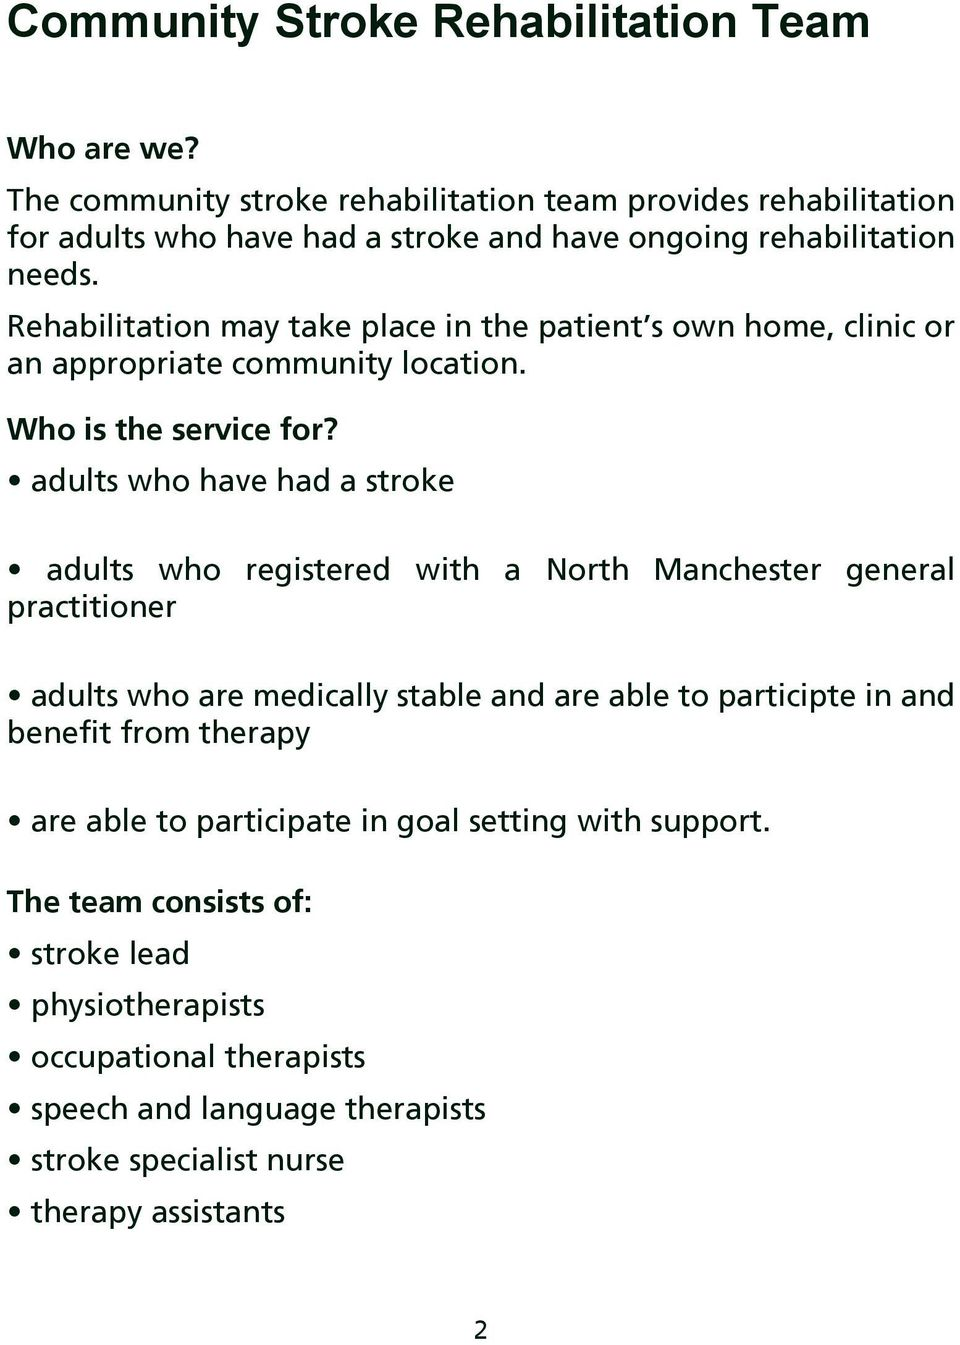 Rehabilitation may take place in the patient s own home, clinic or an appropriate community location. Who is the service for?